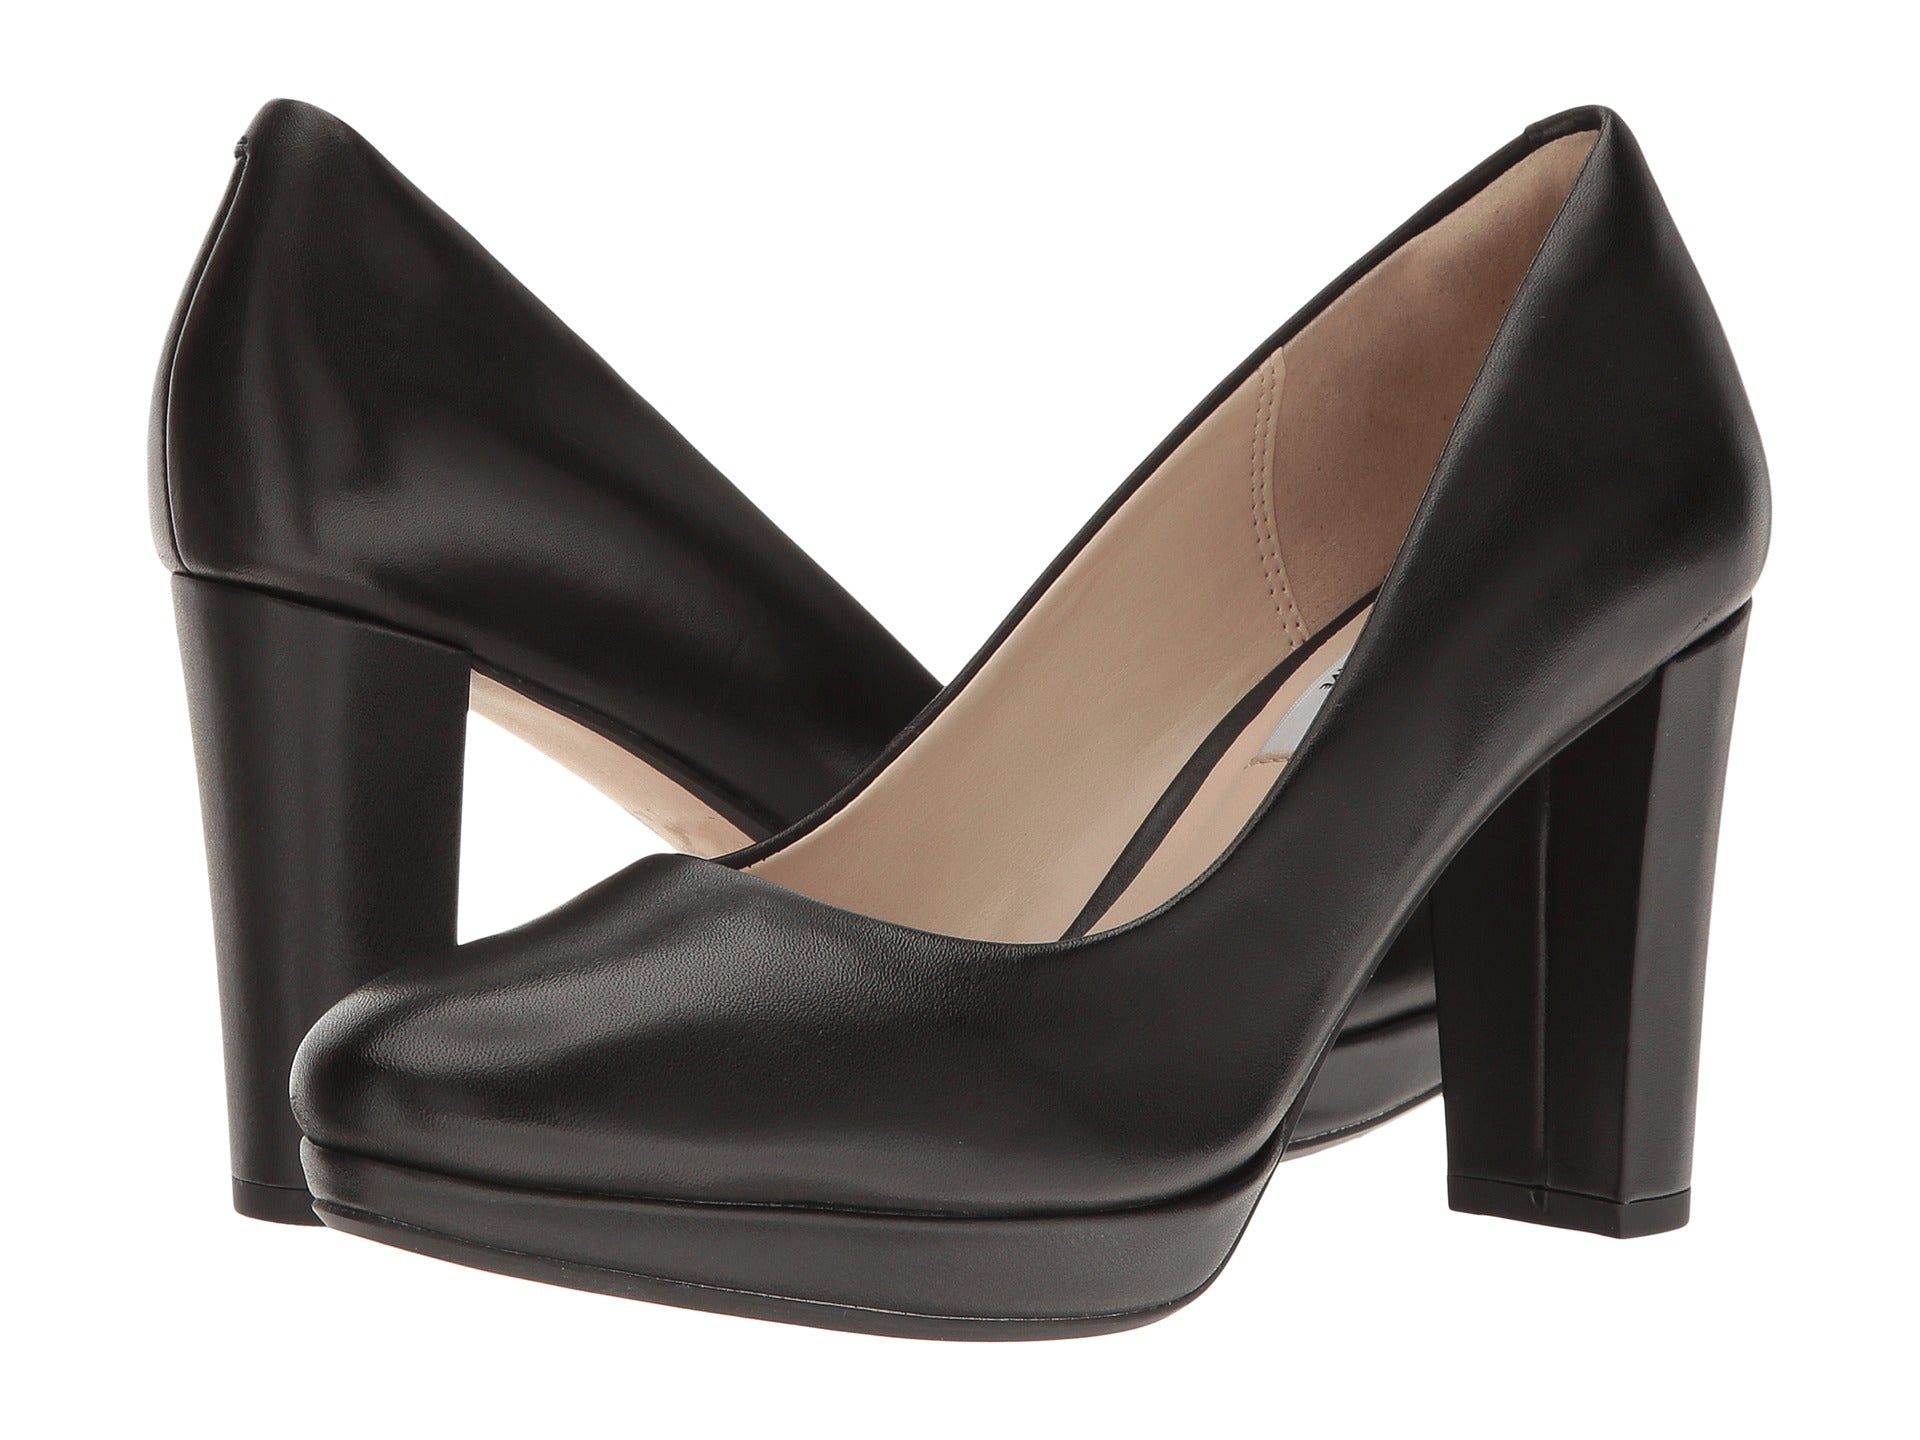 Clarks Kendra Sienna Black Leather